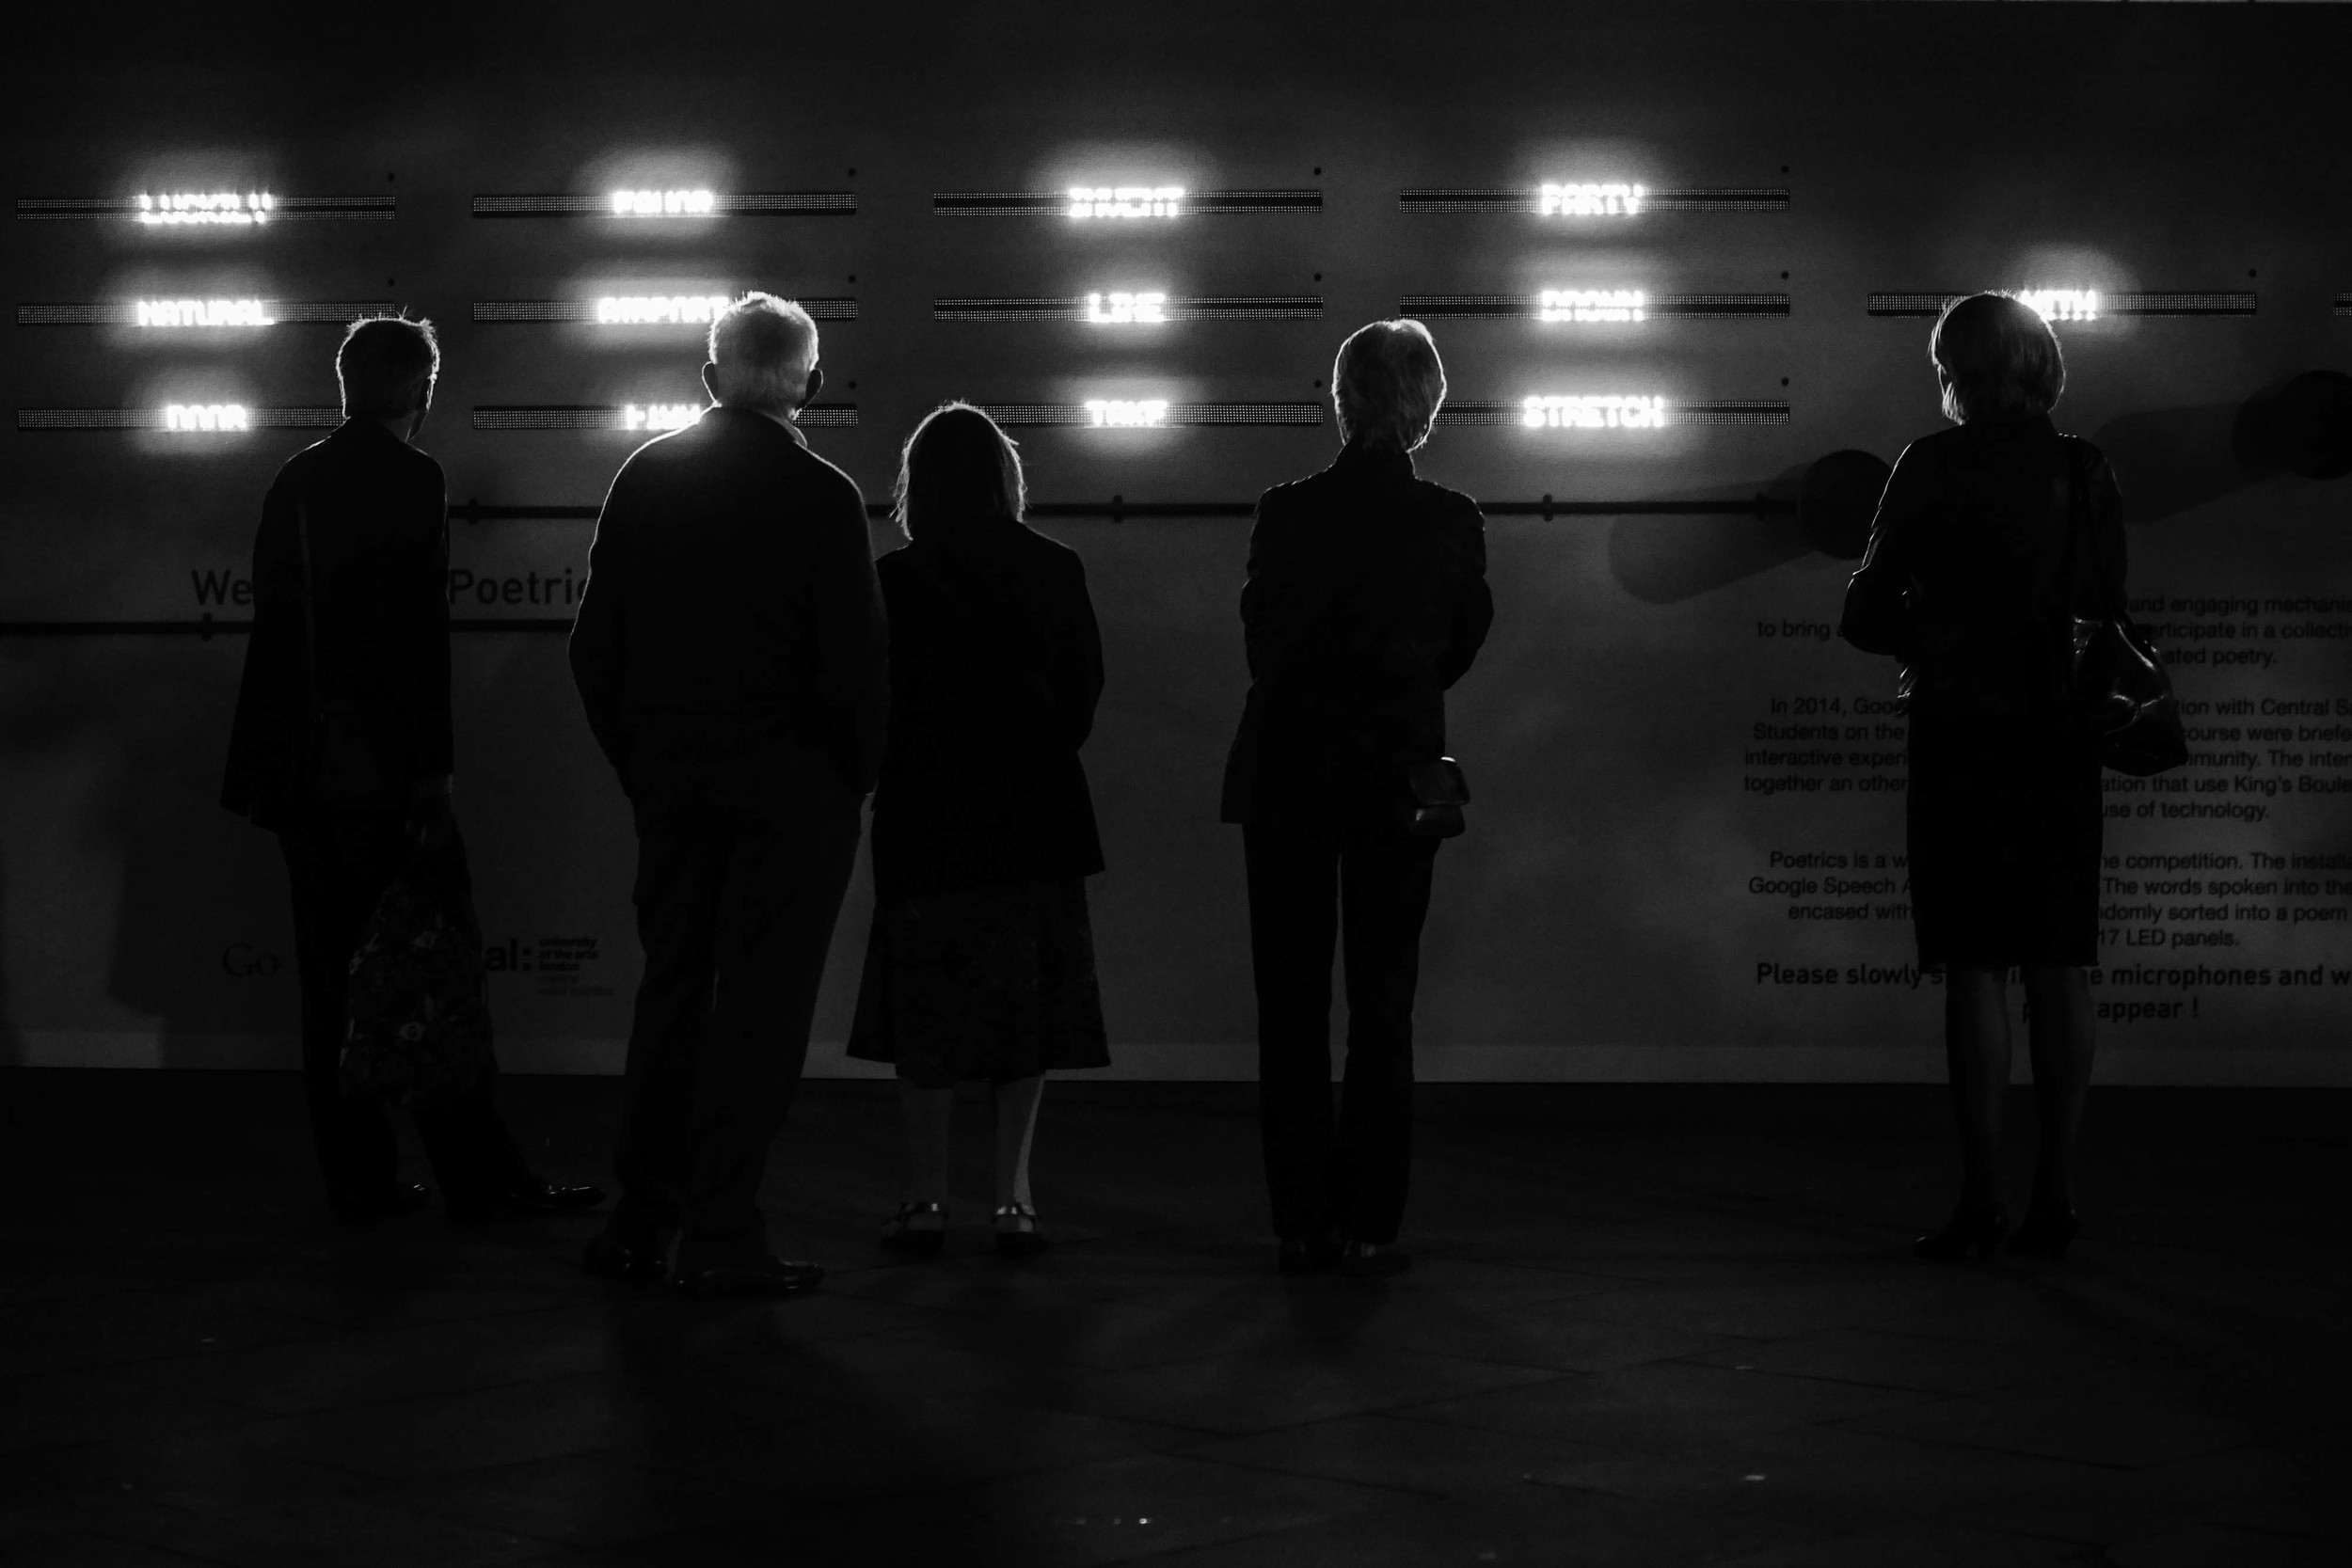 A photograph of a group of people interacting with the Poetrics installation outside King's Cross Station in London